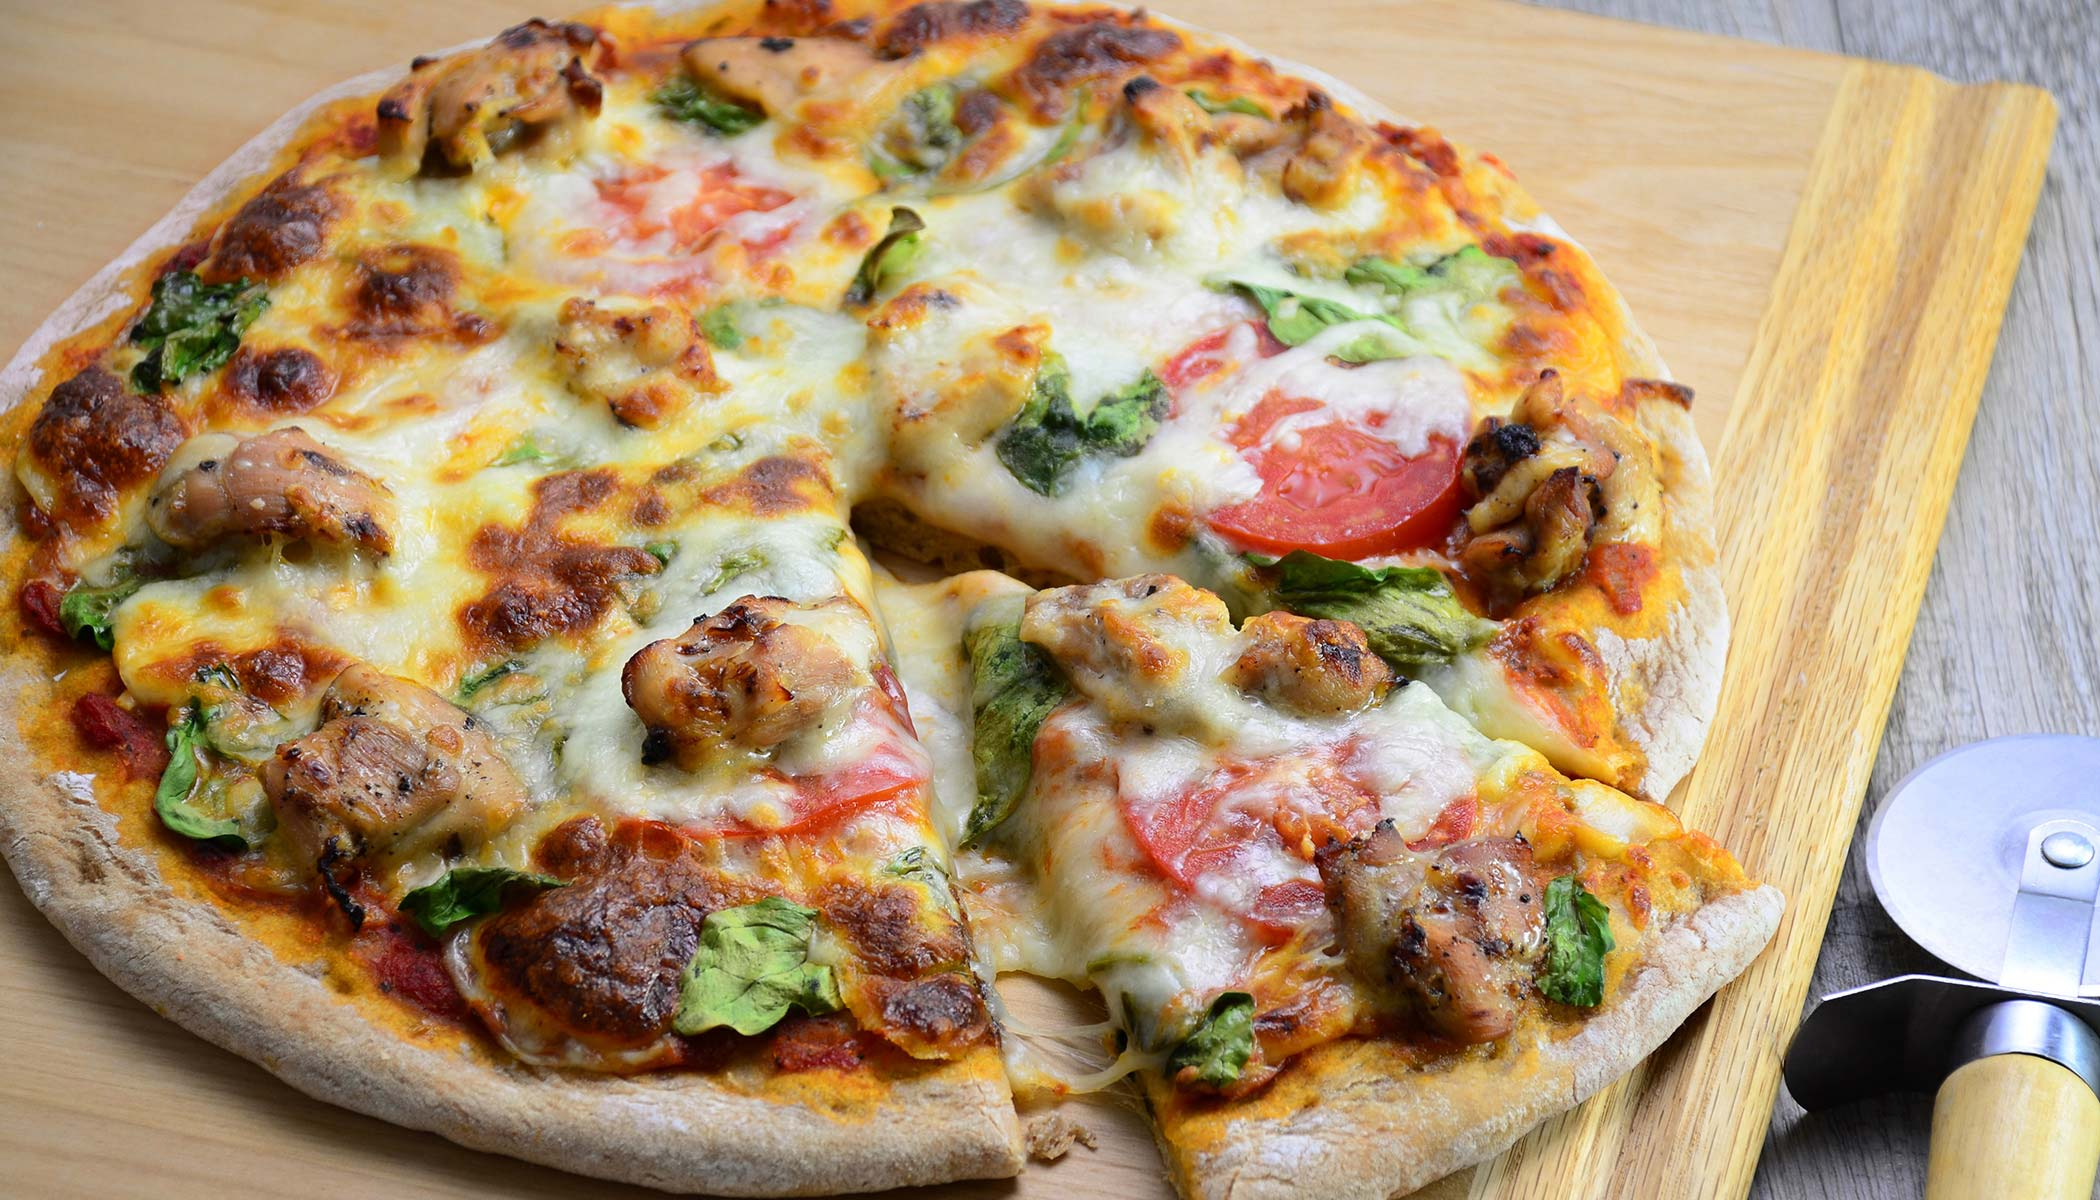 Whole Wheat Chicken Pizza with Spinach and Fresh Tomatoes